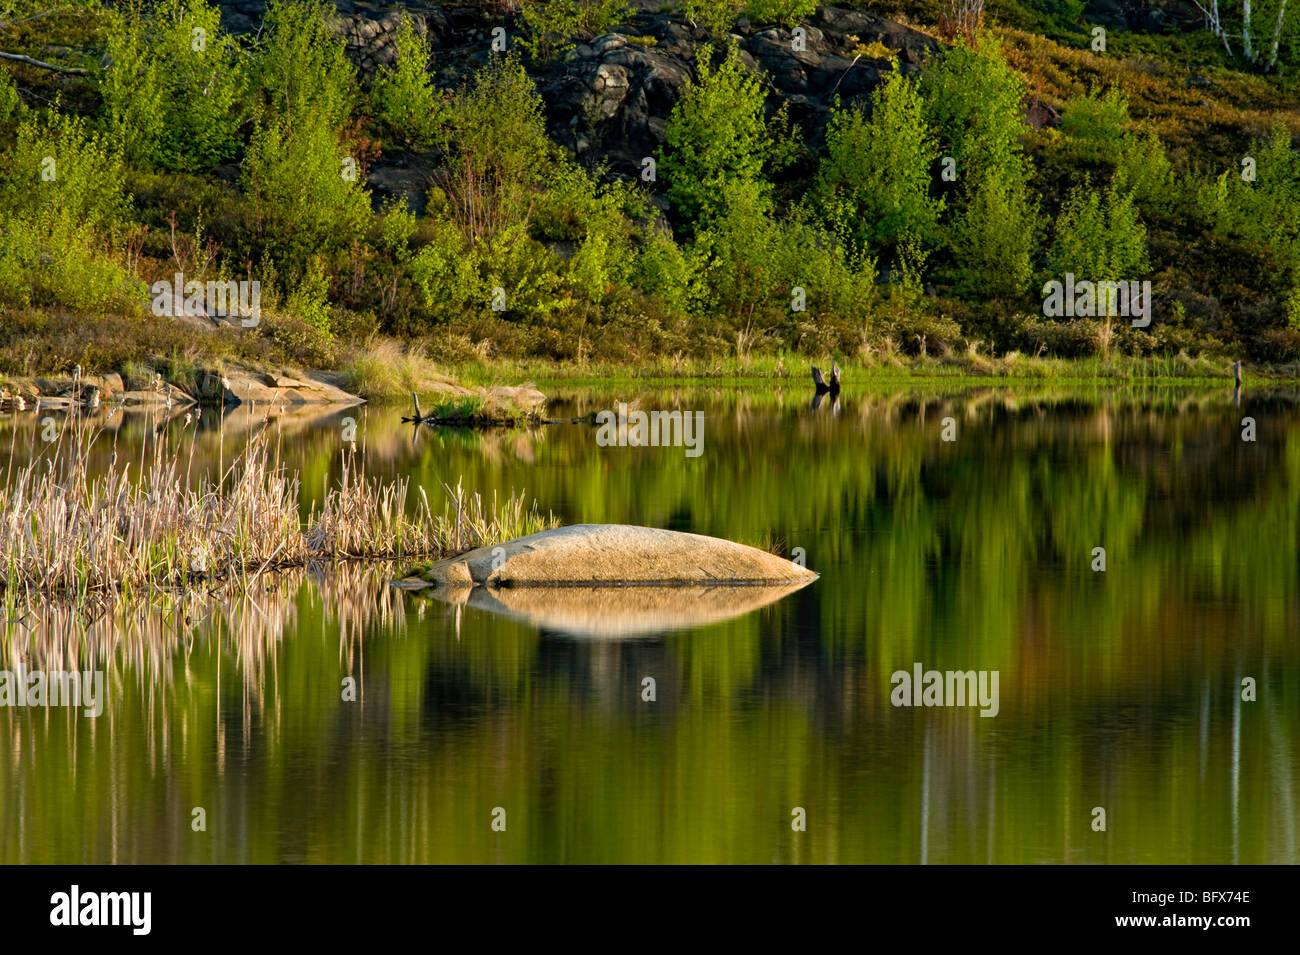 Rock outcrops and early spring foliage colour reflected in beaver pond, Greater Sudbury, Ontario, Canada - Stock Image